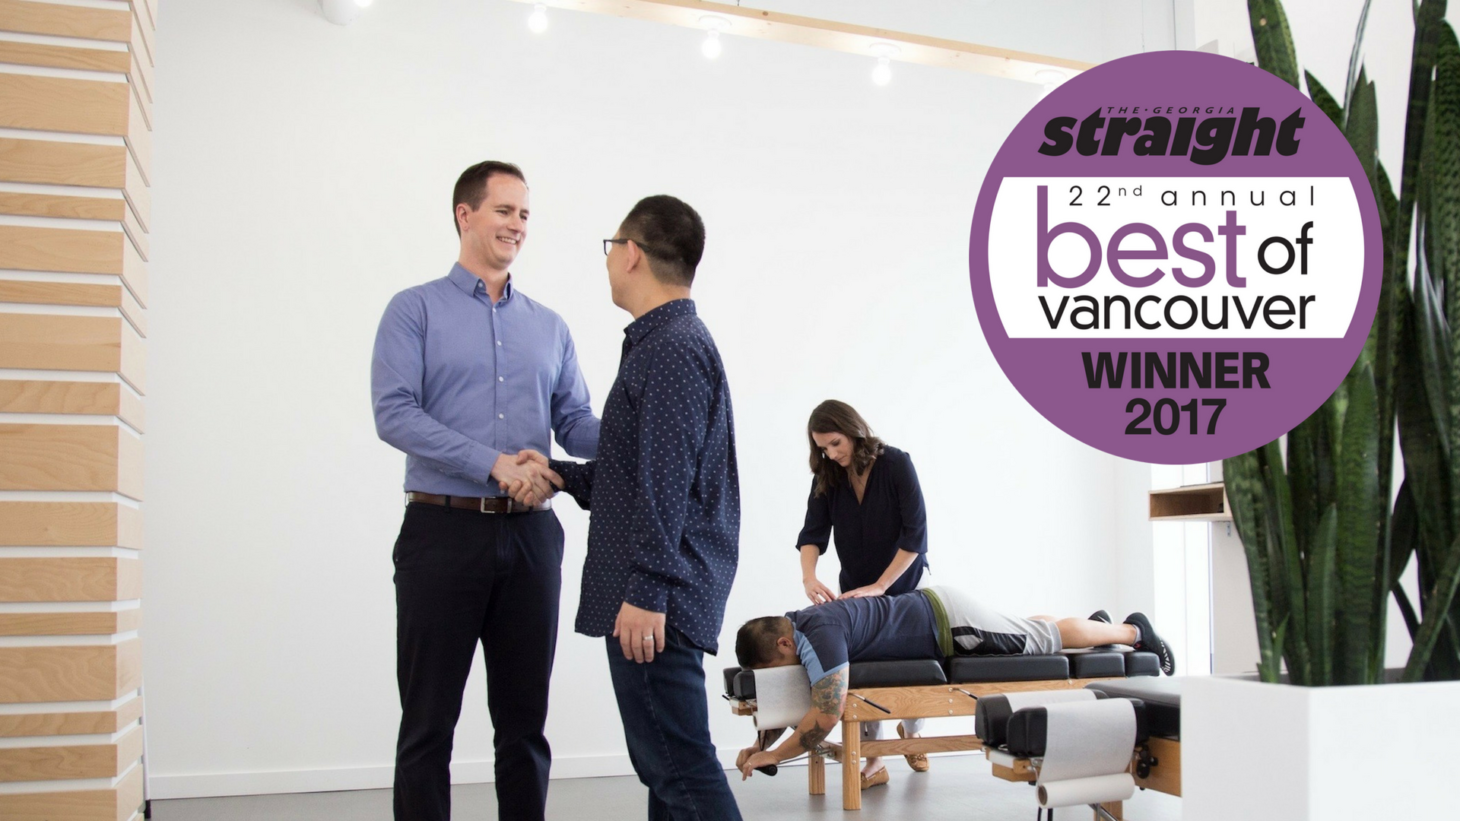 Best of Vancouver, Powerhouse Chiropractic, Vancouver Chiropractor, Olympic Village, Main St, False Creek